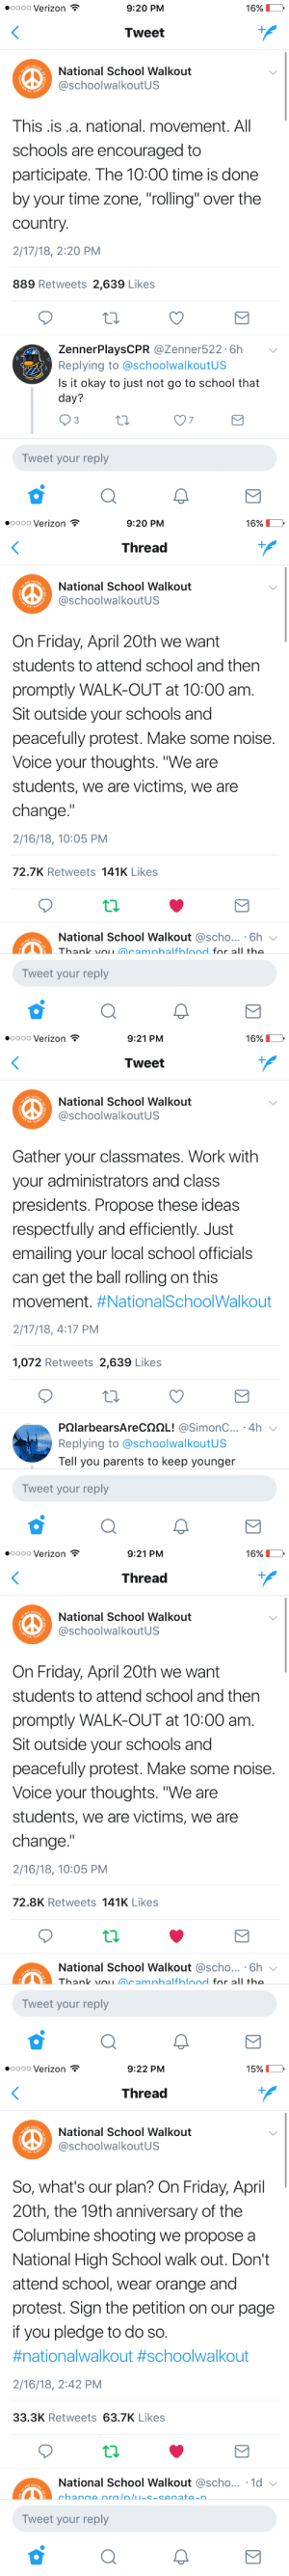 "highfemscience: More info on the school walkout! Spread the word and please participate if you can! [set of tweets from the National School Walkout on twitter reading; ""This .is .a. national. movement. All schools are encouraged to participate. The 10:00 time is done by your time zone, ""rolling"" over the country. Gather your classmates. Work with your administrators and class presidents. Propose these ideas respectfully and efficiently. Just emailing your local school officials can get the ball rolling on this movement. #NationalSchoolWalkout On Friday, April 20th we want students to attend school and then promptly WALK-OUT at 10:00 am. Sit outside your schools and peacefully protest. Make some noise. Voice your thoughts. ""We are students, we are victims, we are change."" So, what's our plan? On Friday, April 20th, the 19th anniversary of the Columbine shooting we propose a National High School walk out. Don't attend school, wear orange and protest. Sign the petition on our page if you pledge to do so. #nationalwalkout #schoolwalkout""]: oooo Verizon  9:20 PM  16% 1  Tweet  National School Walkout  schoolwalkoutUS  This is.a. national. movement. All  schools are encouraged to  participate. The 10:00 time is done  by your time zone, ""rolling"" over the  country  2/17/18, 2:20 PM  889 Retweets 2,639 Likes  ZennerPlaysCPR @Zenner522.6hv  Replying to @schoolwalkoutUS  Is it okay to just not go to school that  day?  7  Tweet your reply   oooo Verizon  9:20 PM  16%D  Thread  National School Walkout  SchoolwalkoutUS  On Friday, April 20th we want  students to attend school and then  promptly WALK-OUT at 10:00 am.  Sit outside your schools and  peacefully protest. Make some noise.  Voice your thoughts. ""We are  students, we are victims, we are  change.""  2/16/18, 10:05 PM  72.7K Retweets 141K Likes  National School Walkout @scho... 6h  Tweet your reply   oooo Verizon  9:21 PM  16% D  Tweet  National School Walkout  SchoolwalkoutUS  Gather your classmates. Work with  your administrators and class  presidents. Propose these ideas  respectfully and efficiently. Just  emailing your local school officials  can get the ball rolling on this  movement. #NationalSchoo